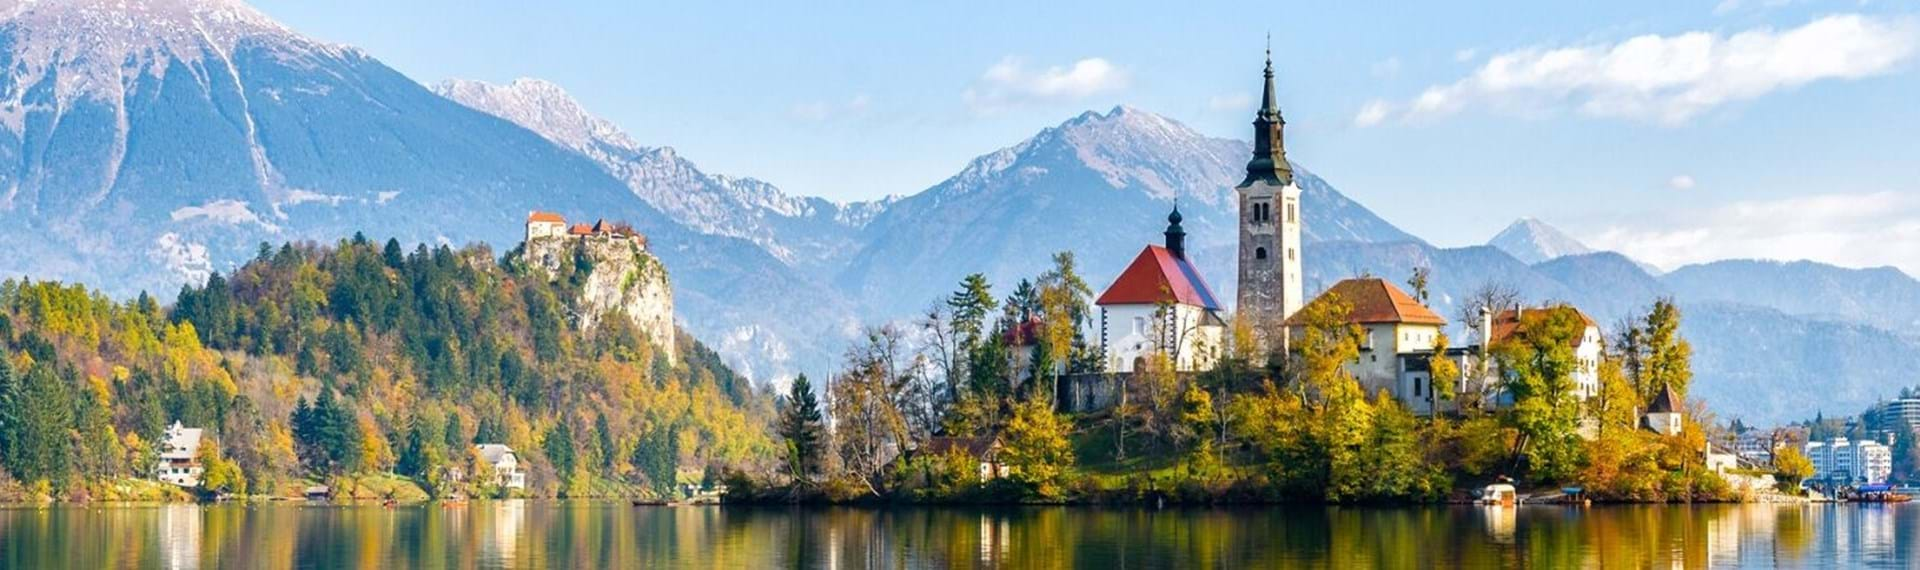 Visit-Slovenia-on-a-guided-holiday